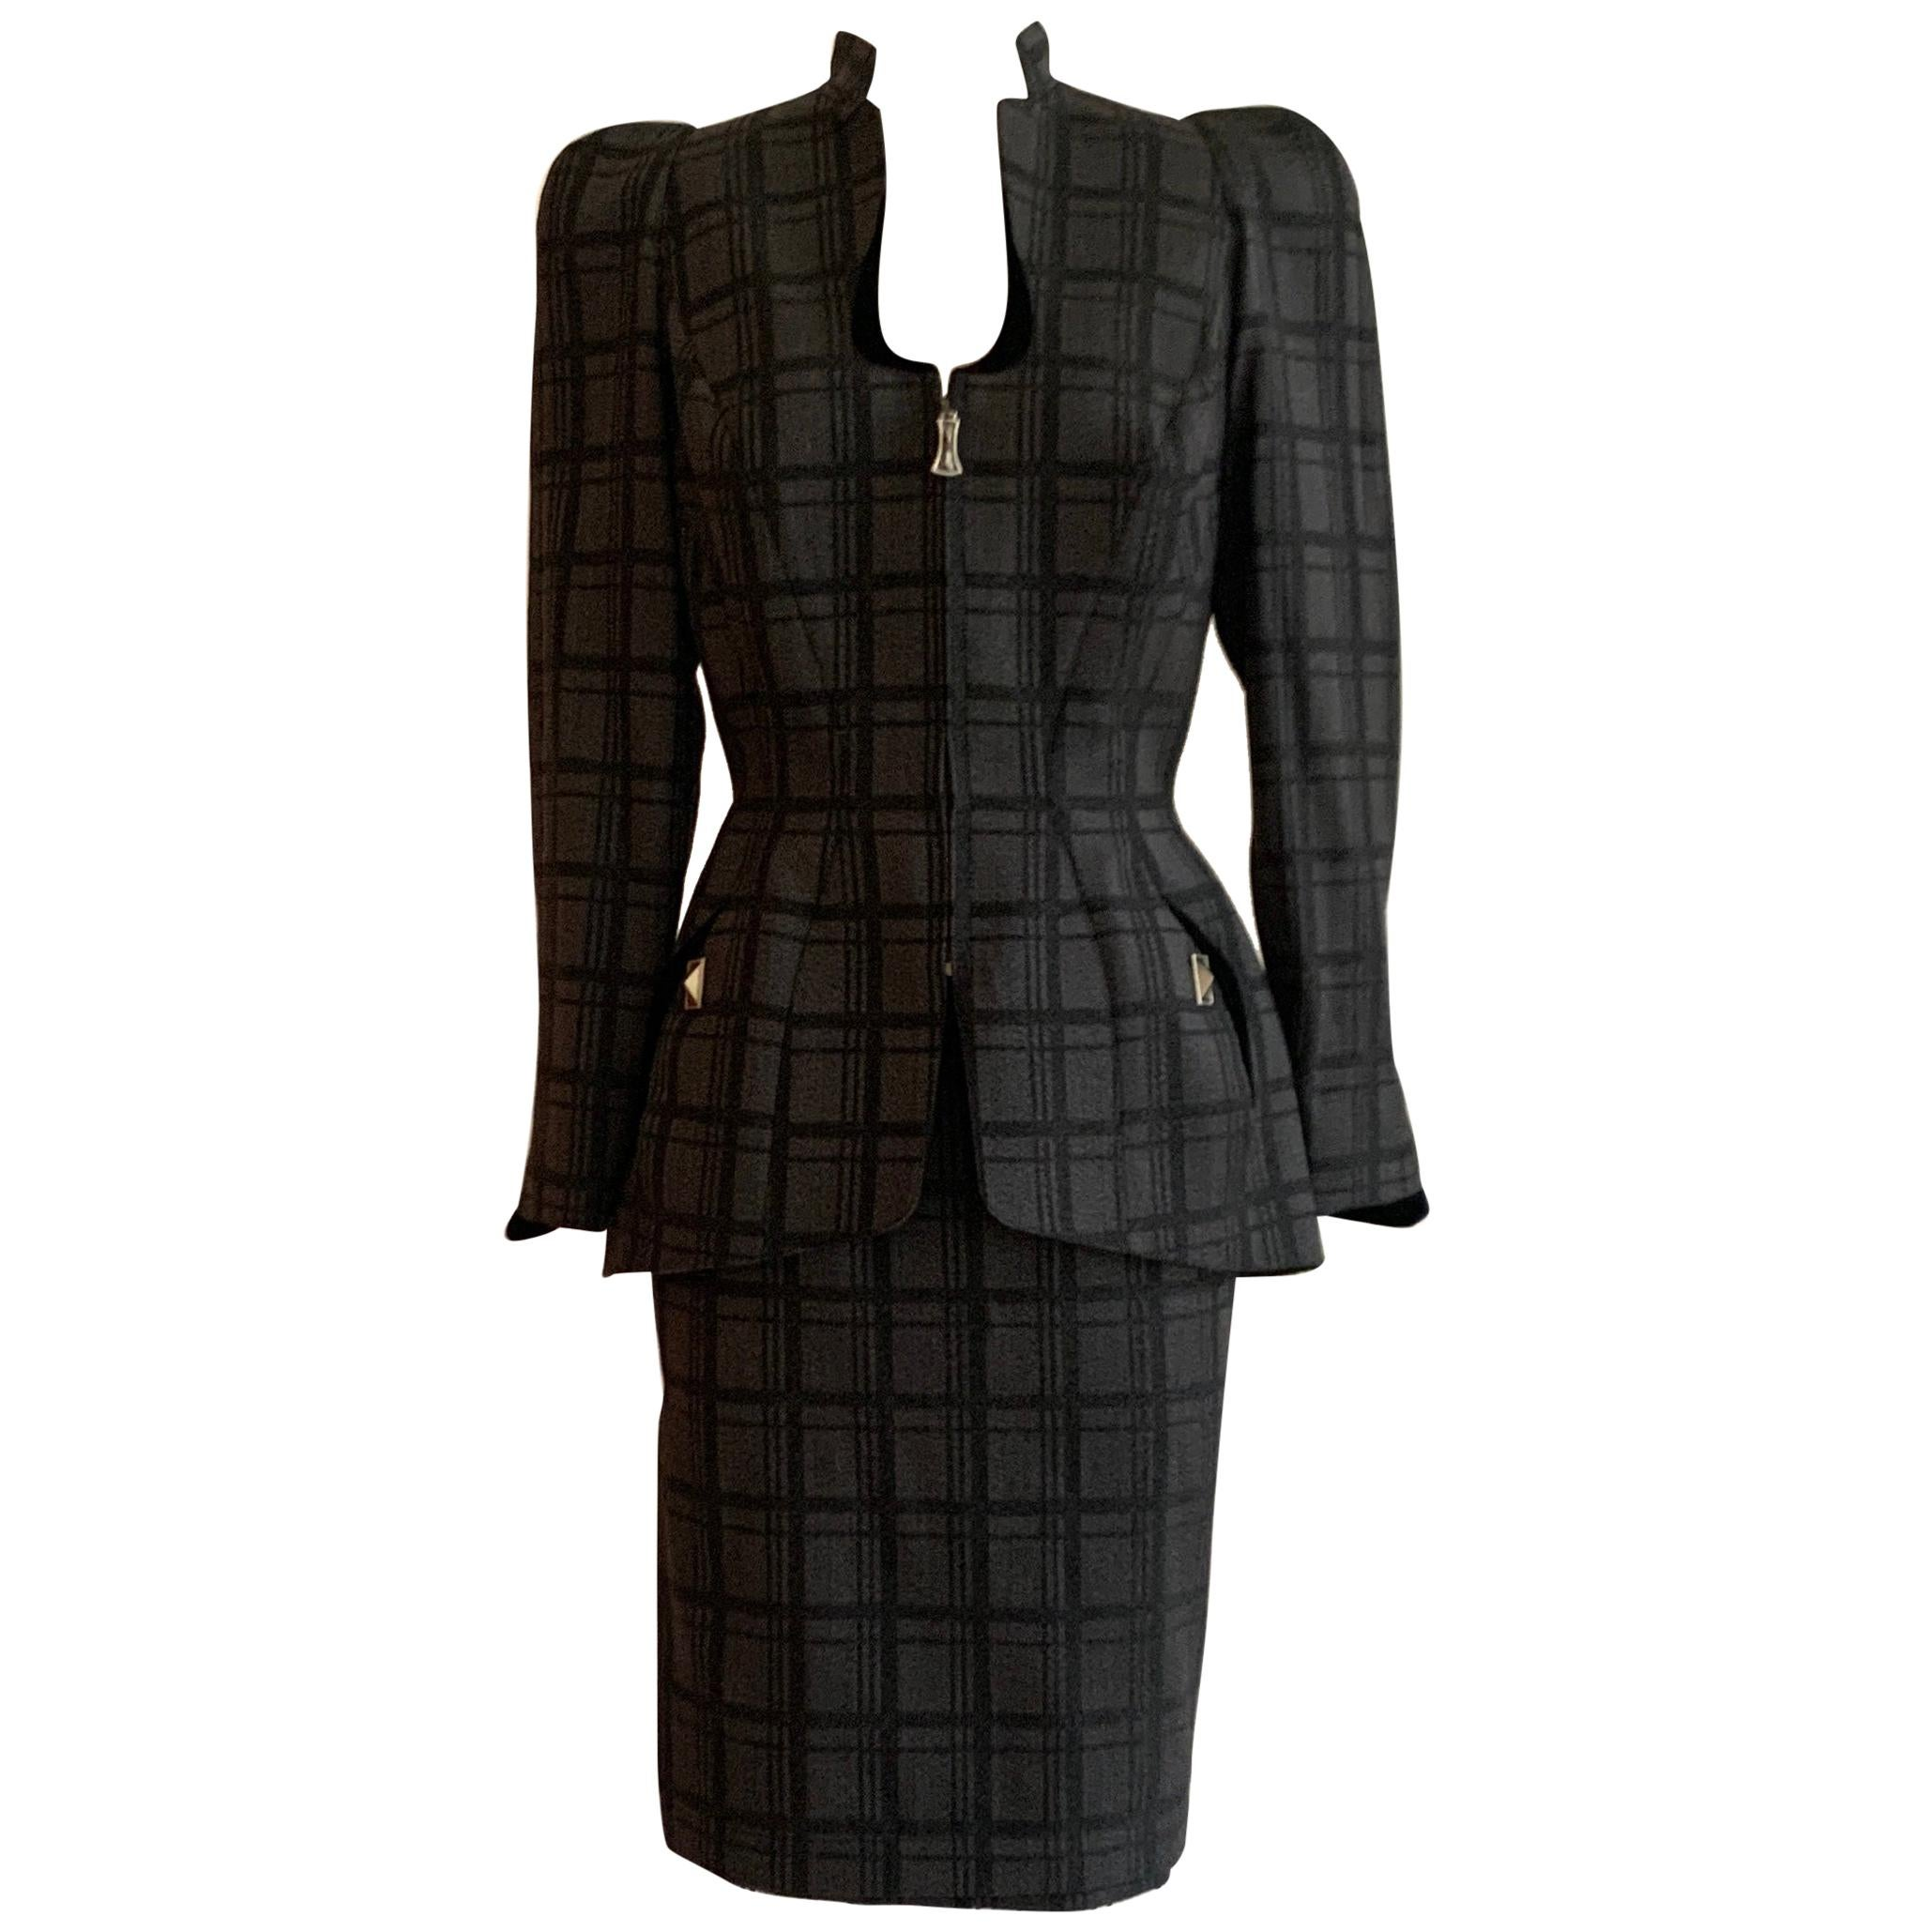 Thierry Mugler 1980s Unworn Grey and Black Plaid Structured Skirt Suit